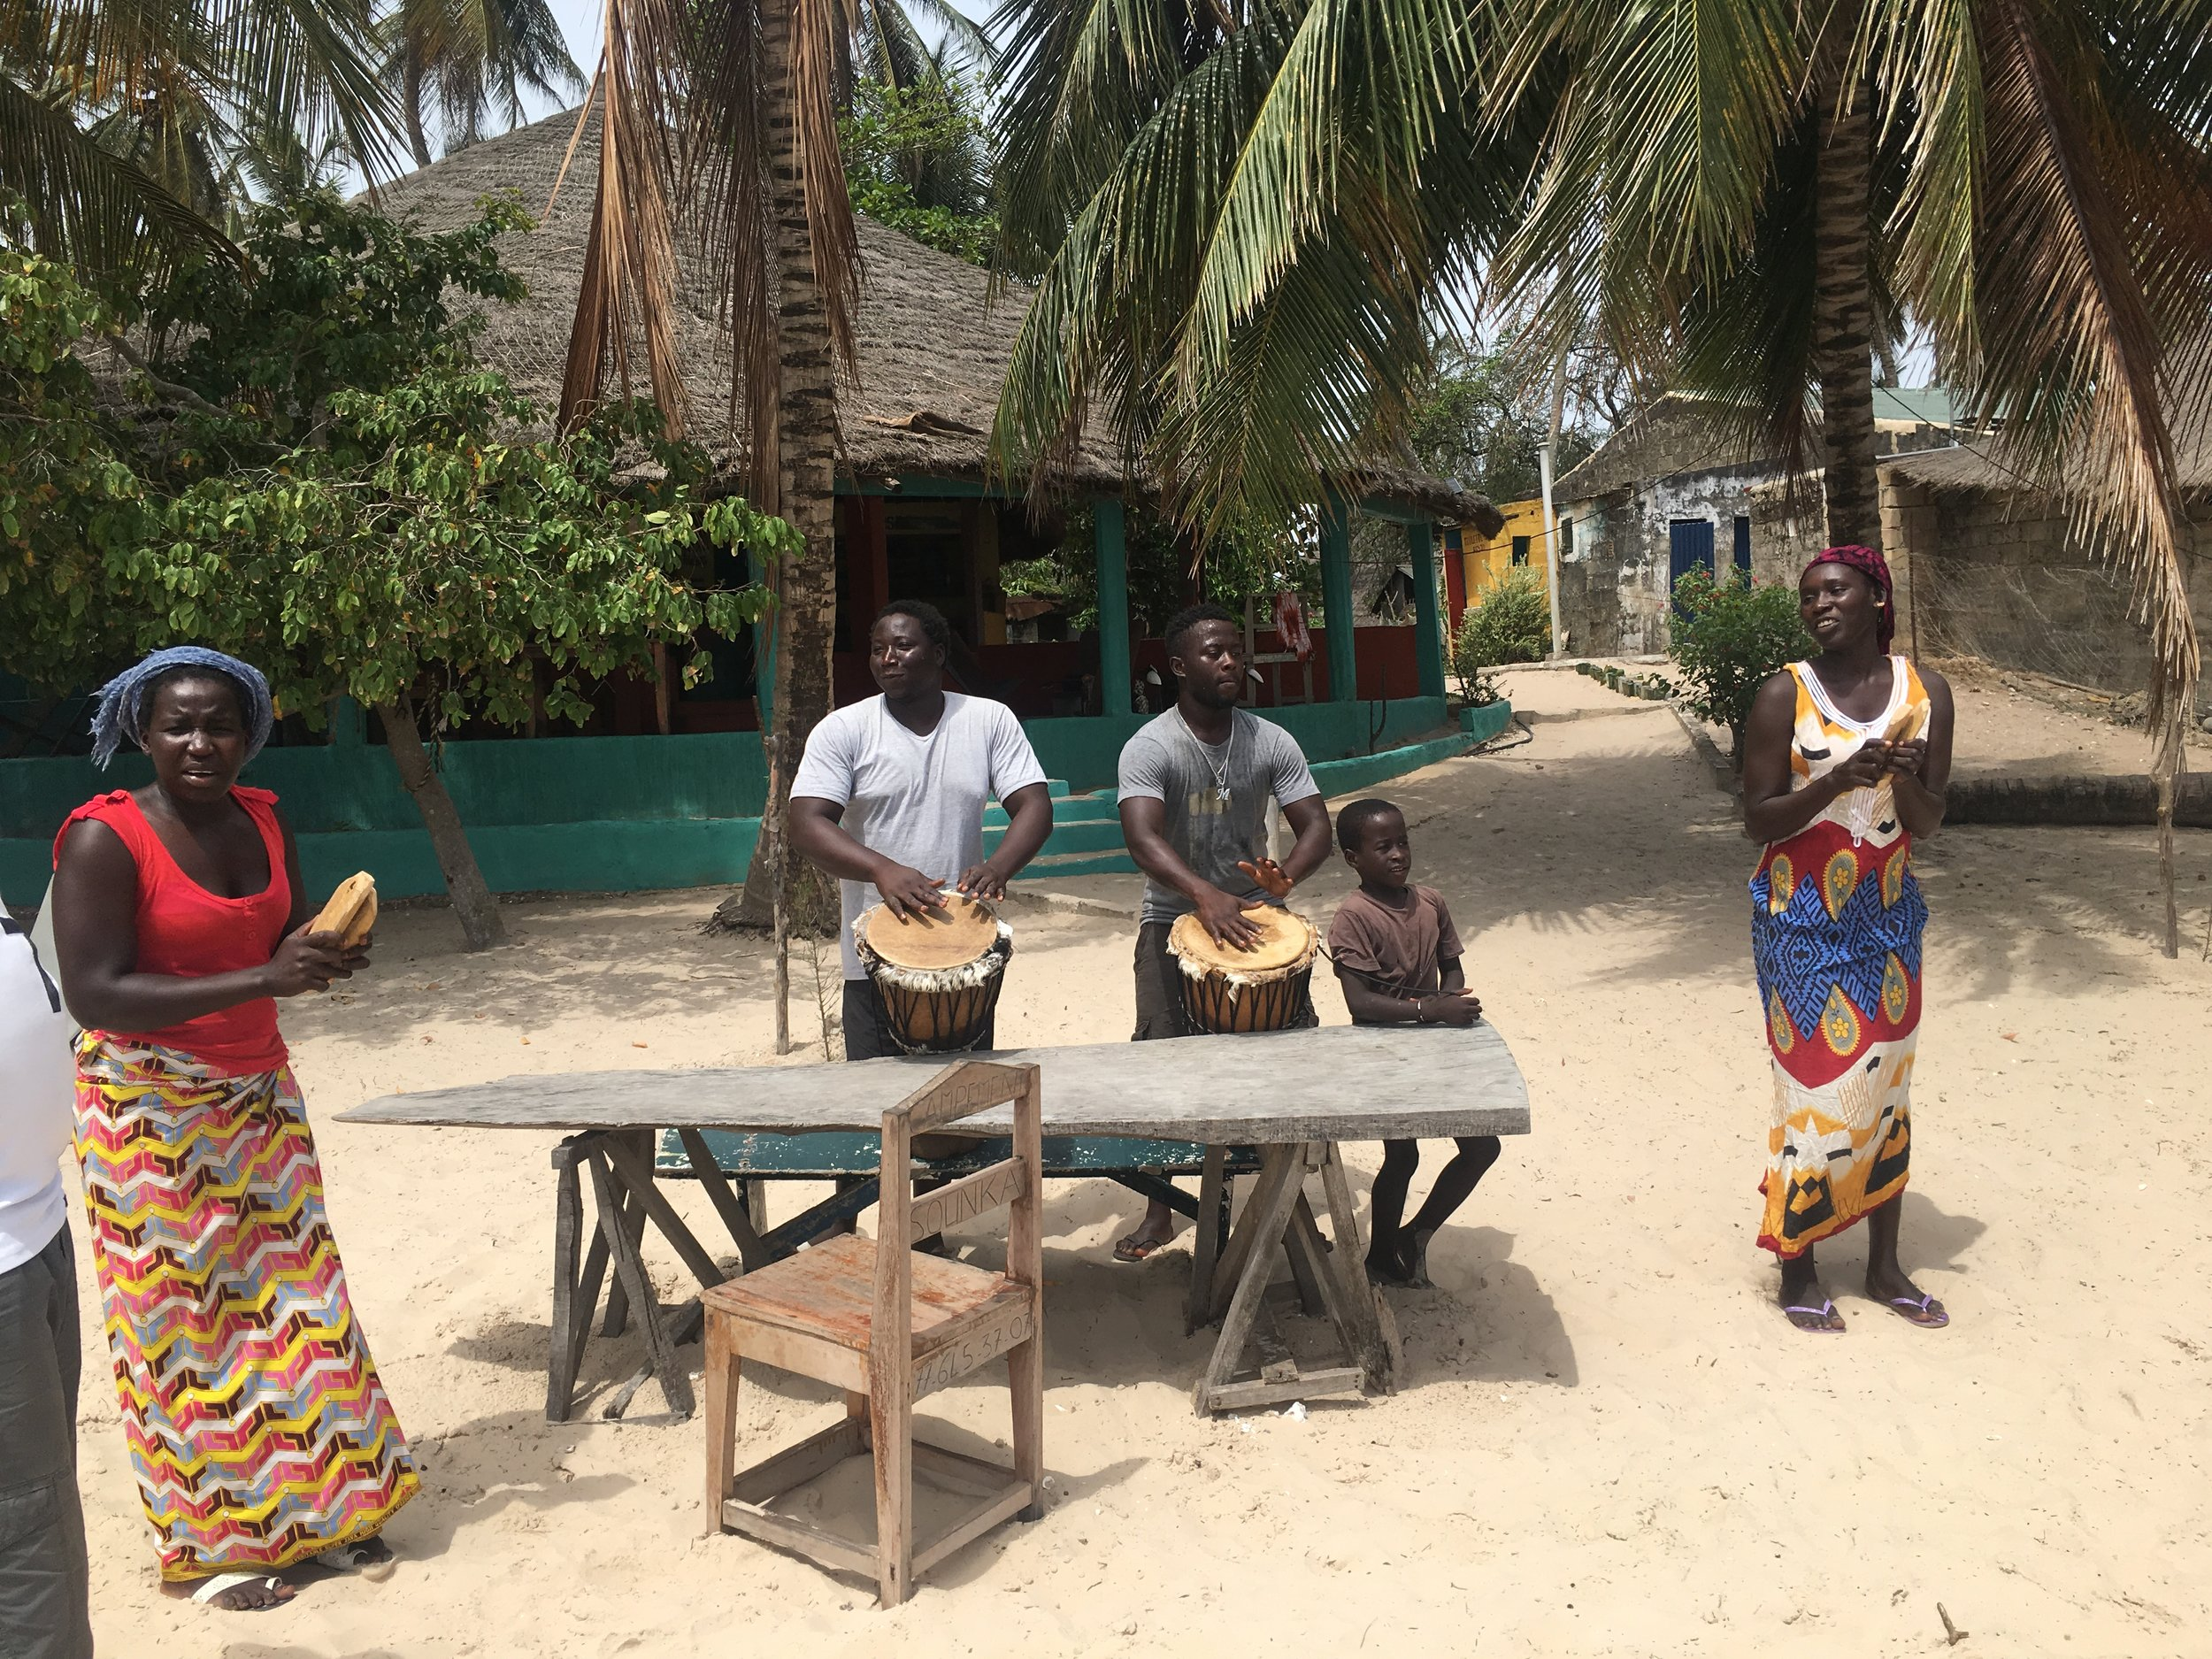 Awa, Youssou, Modou and Titina welcomed us with drumming and dancing on the beach.